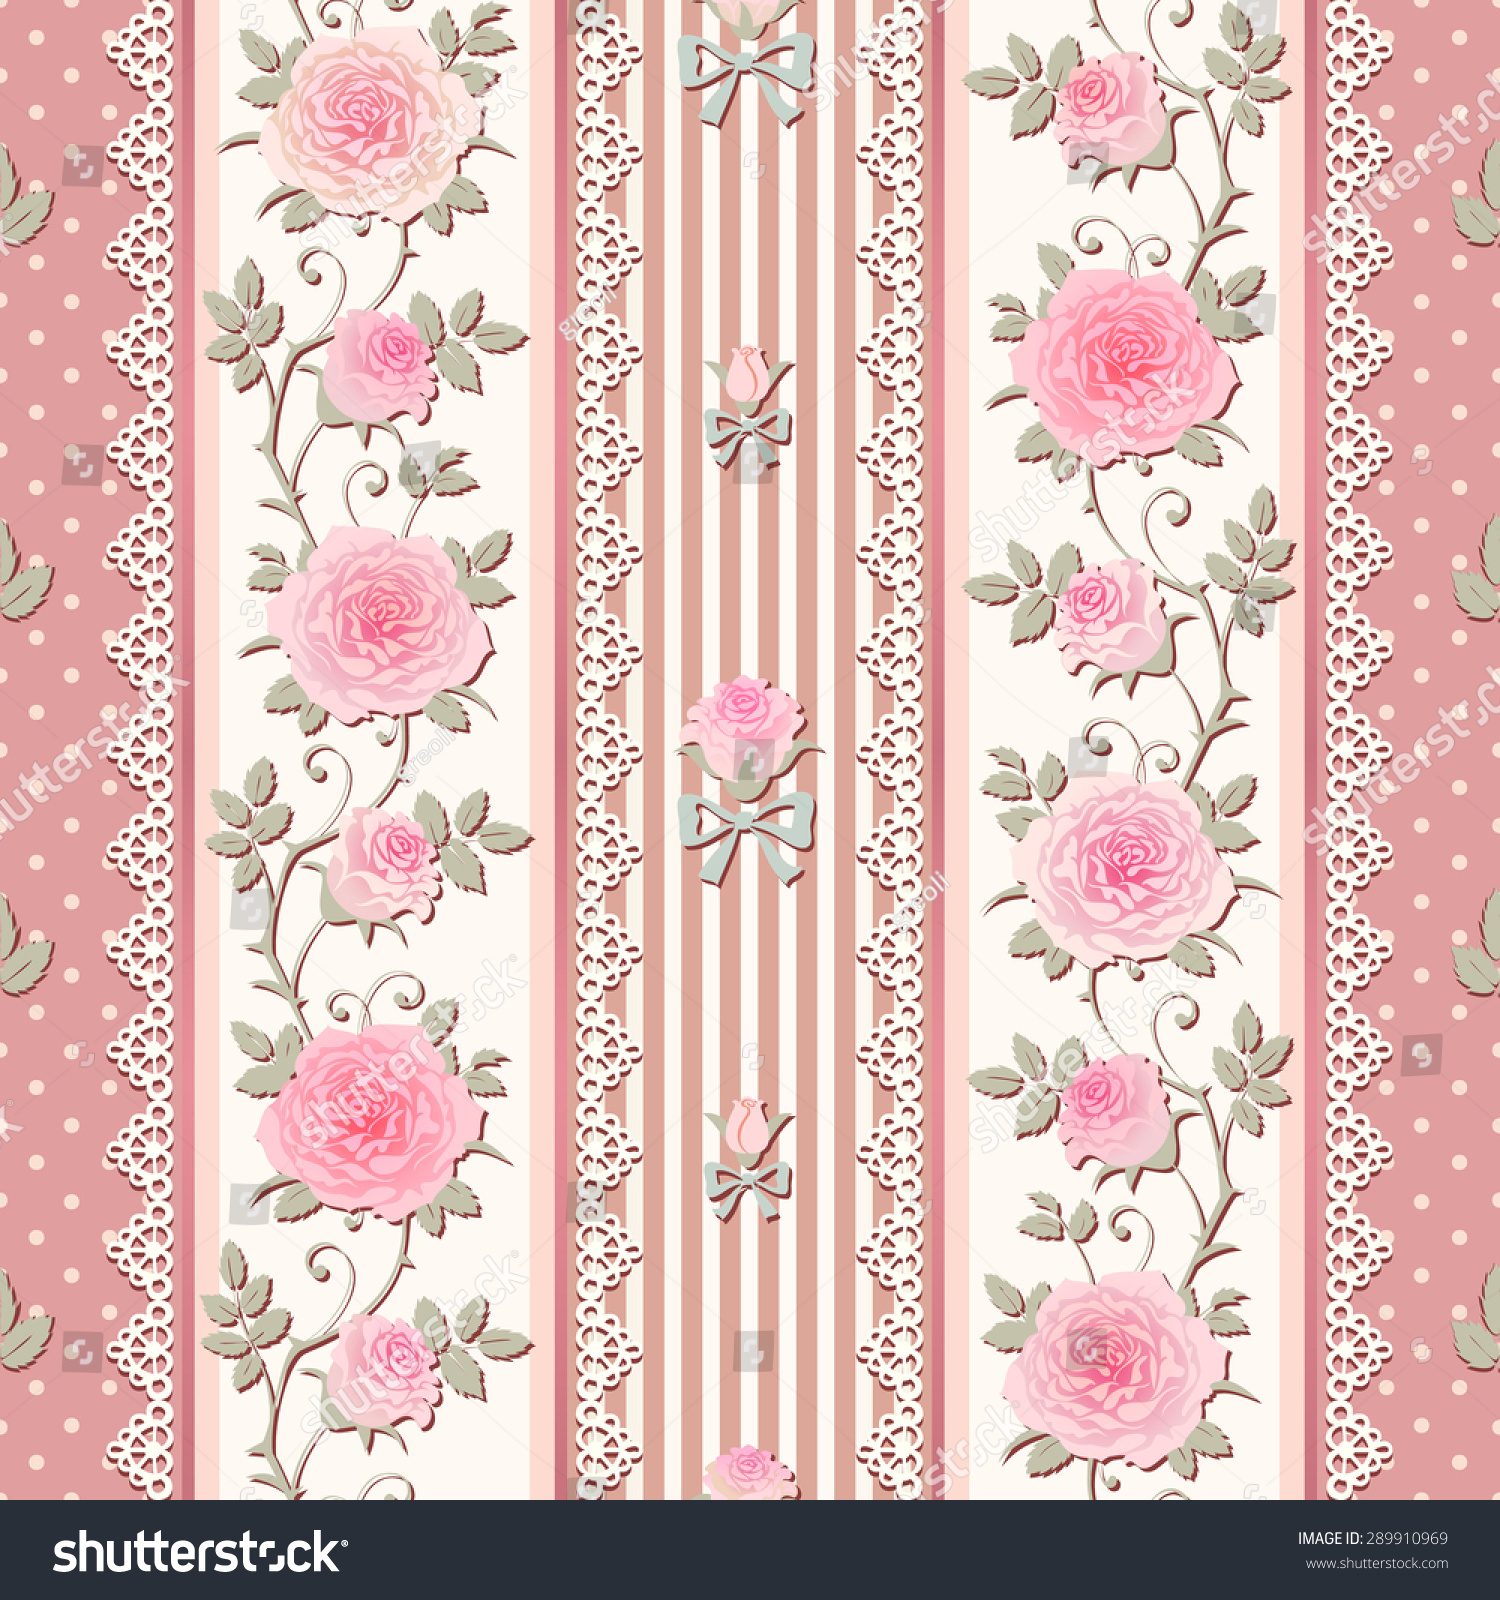 Seamless Pink Floral Background Shabby Chic Style Patterns With Roses Laces And Bows